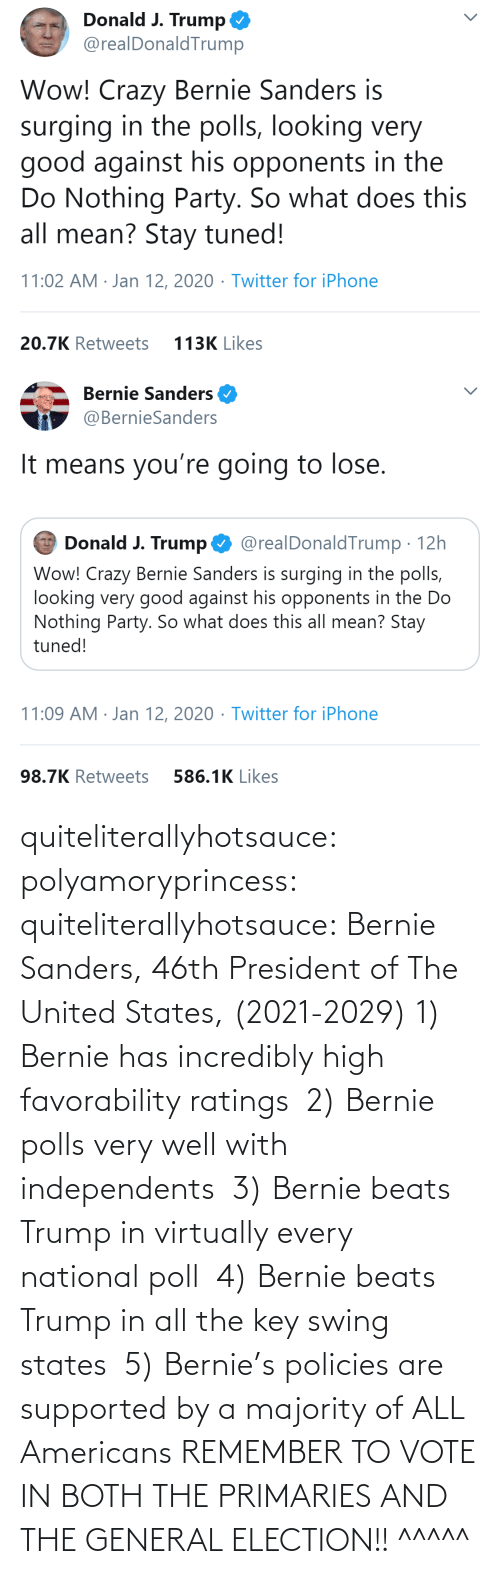 swing: quiteliterallyhotsauce:  polyamoryprincess:  quiteliterallyhotsauce:   Bernie Sanders, 46th President of The United States, (2021-2029)    1) Bernie has incredibly high favorability ratings  2) Bernie polls very well with independents  3) Bernie beats Trump in virtually every national poll  4) Bernie beats Trump in all the key swing states  5) Bernie's policies are supported by a majority of ALL Americans    REMEMBER TO VOTE IN BOTH THE PRIMARIES AND THE GENERAL ELECTION!!  ^^^^^